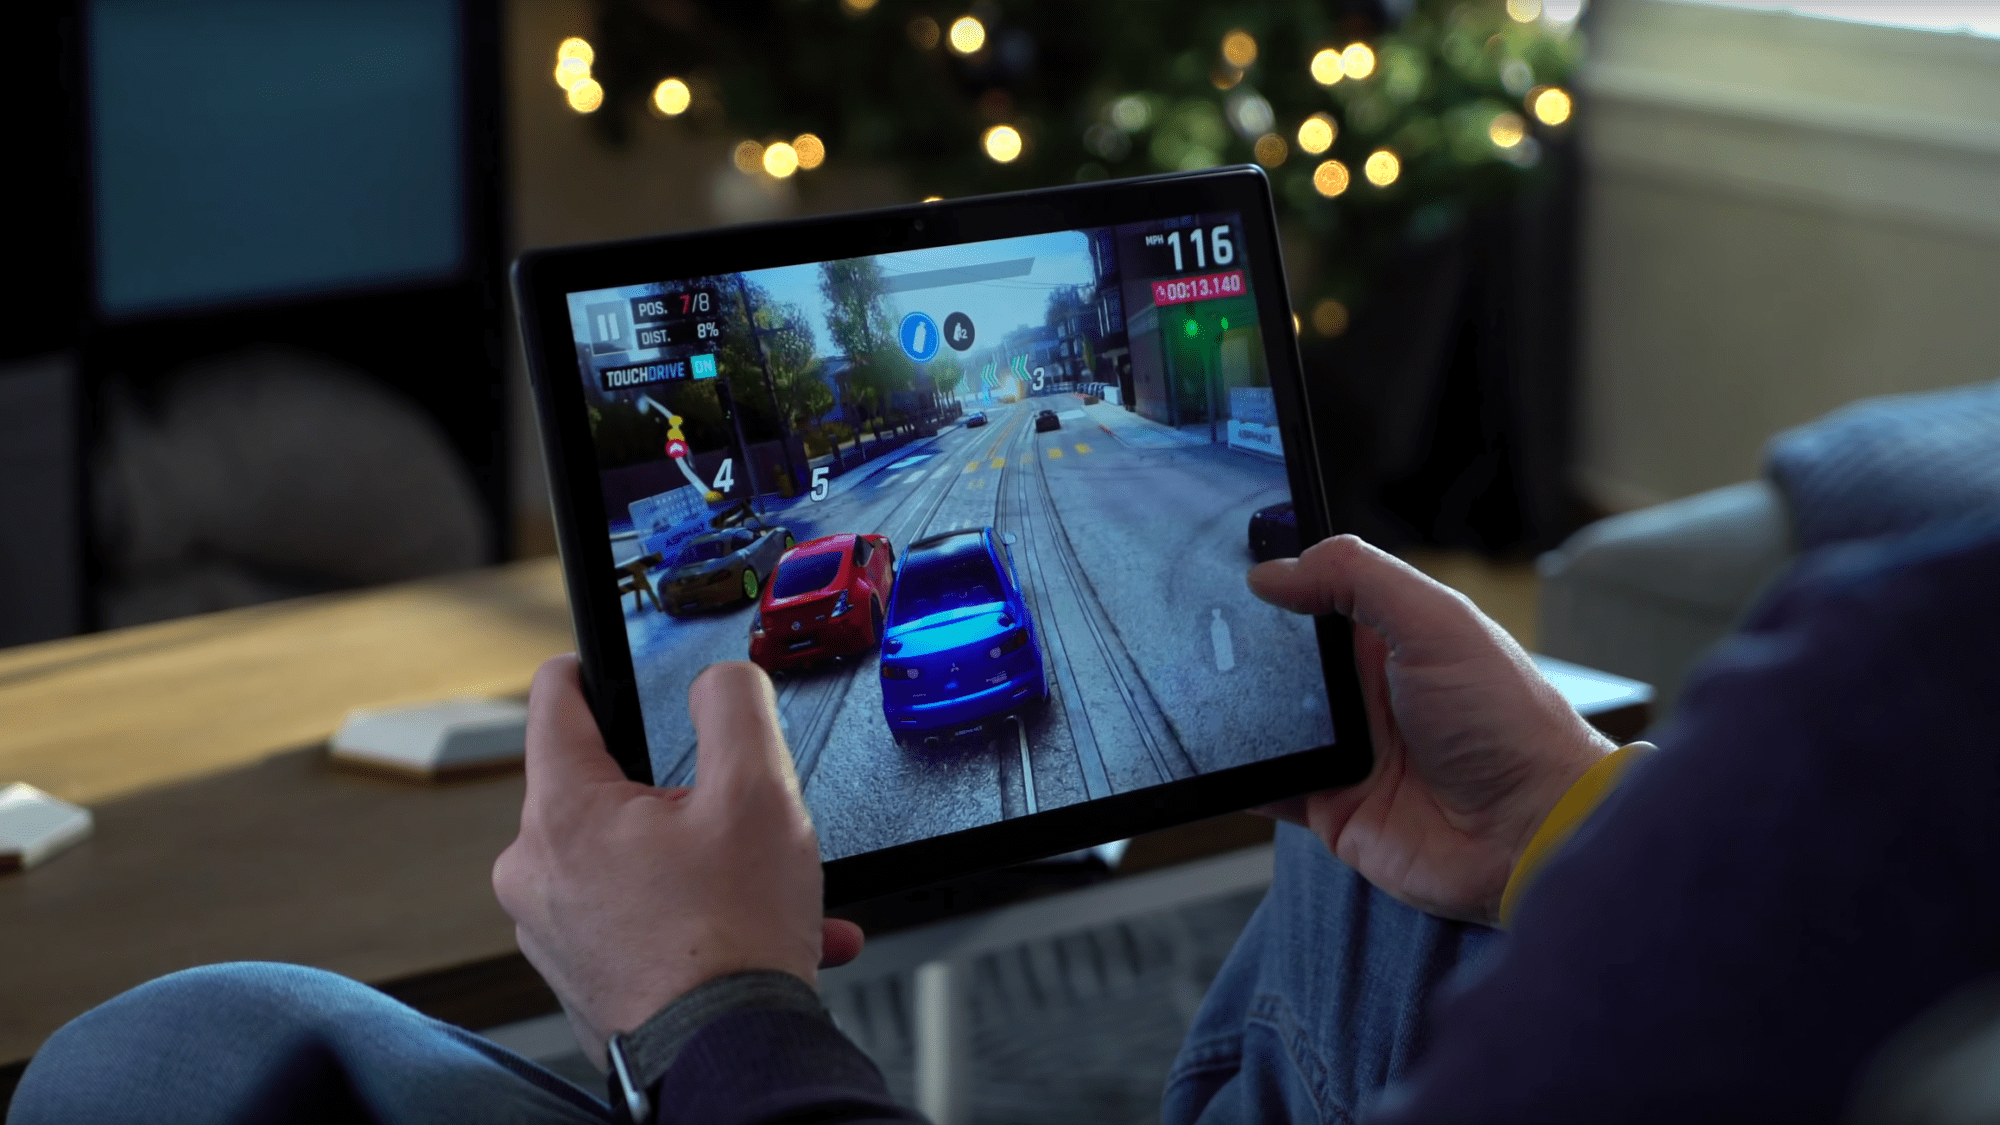 No, There Are No NVMe Storage Options For Pixel Slate